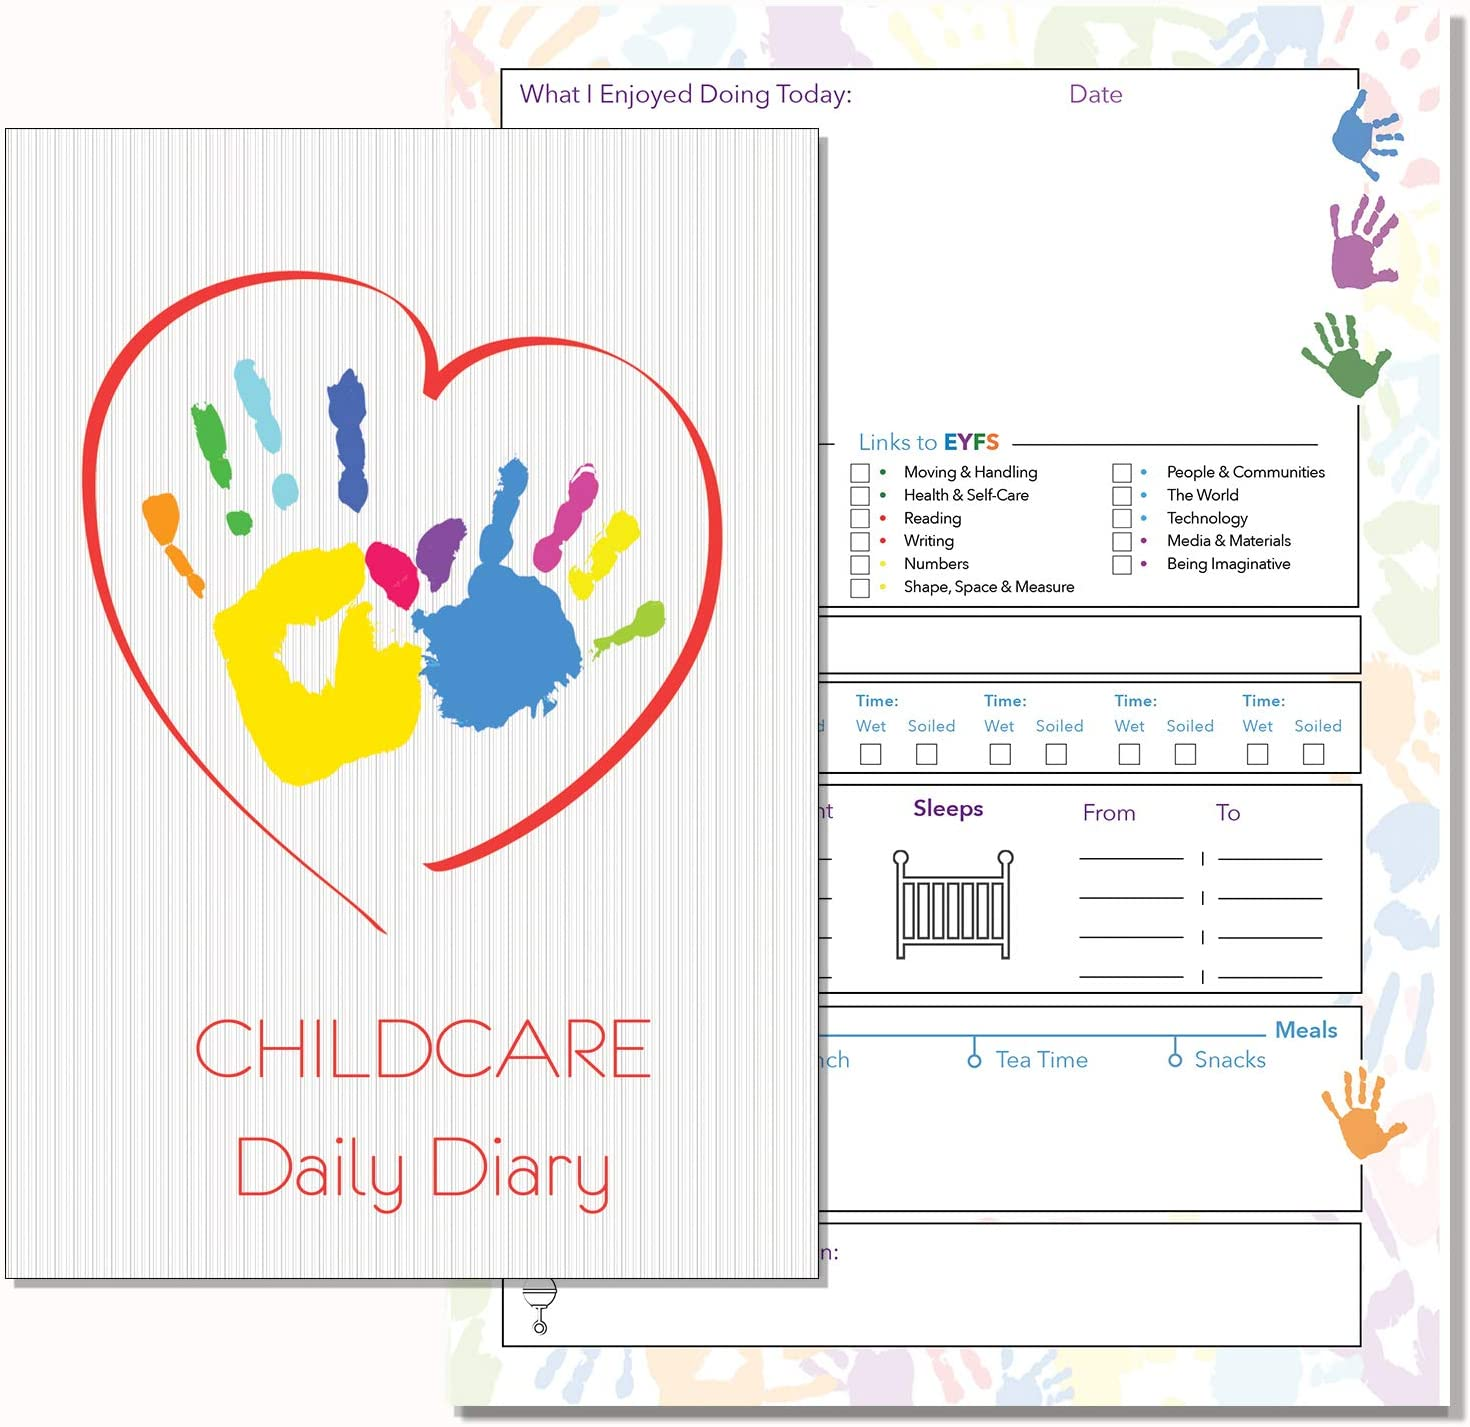 REF GREY 09 NURSERY DIARY,CHILDMINDERS DAILY DIARY EYFS RECORD KEEPING